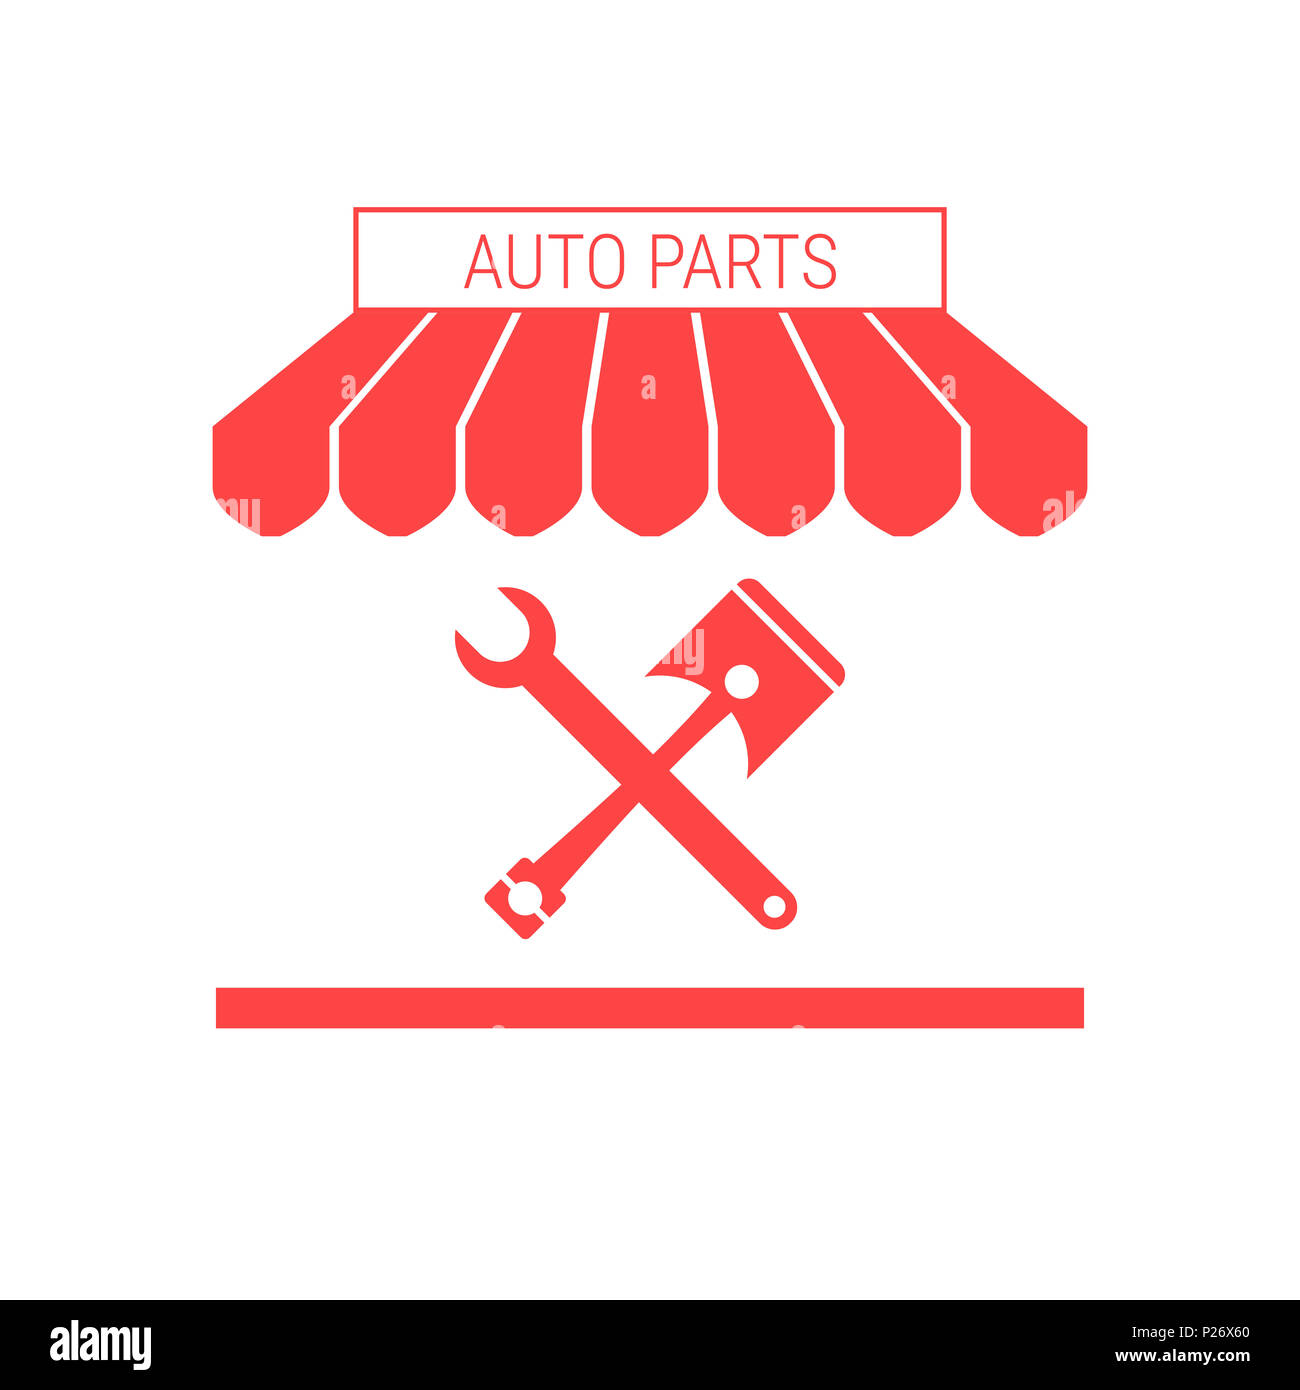 Auto Parts Shop Car Repair Single Flat Icon Striped Awning And Diagrams Signboard A Series Of Icons